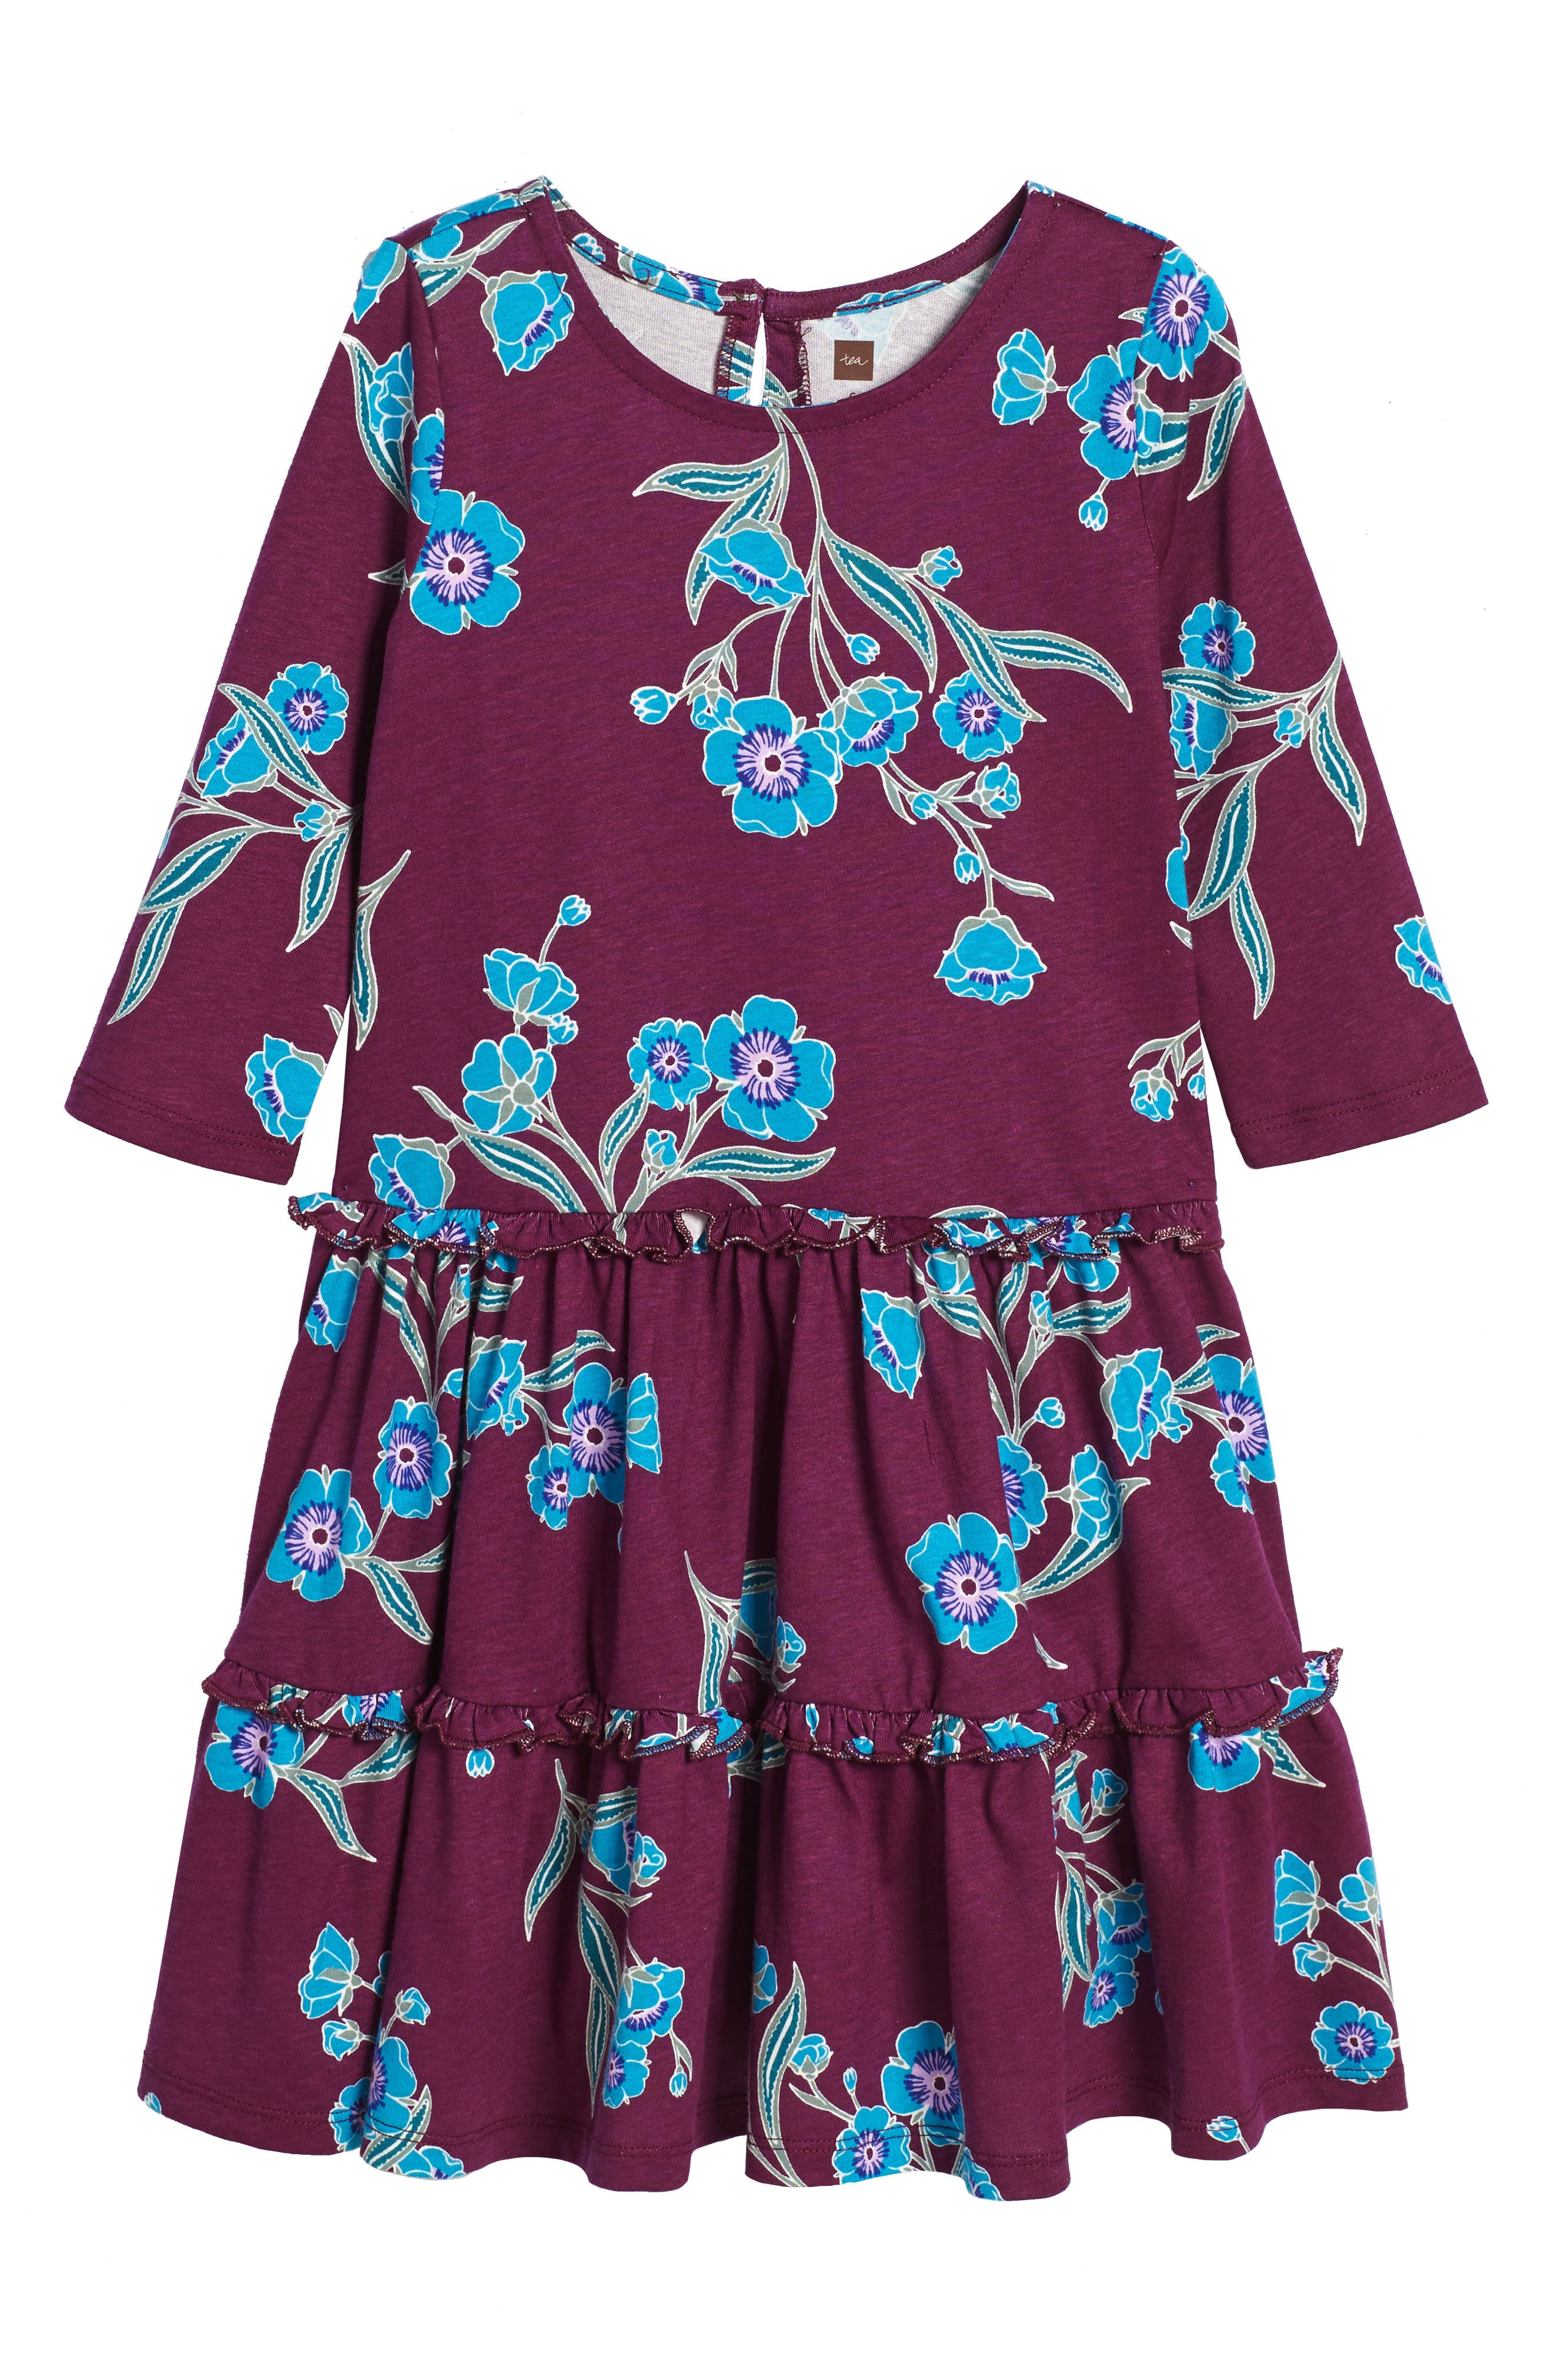 Marjorie Tiered Dress,                             Main thumbnail 1, color,                             Cosmic Berry